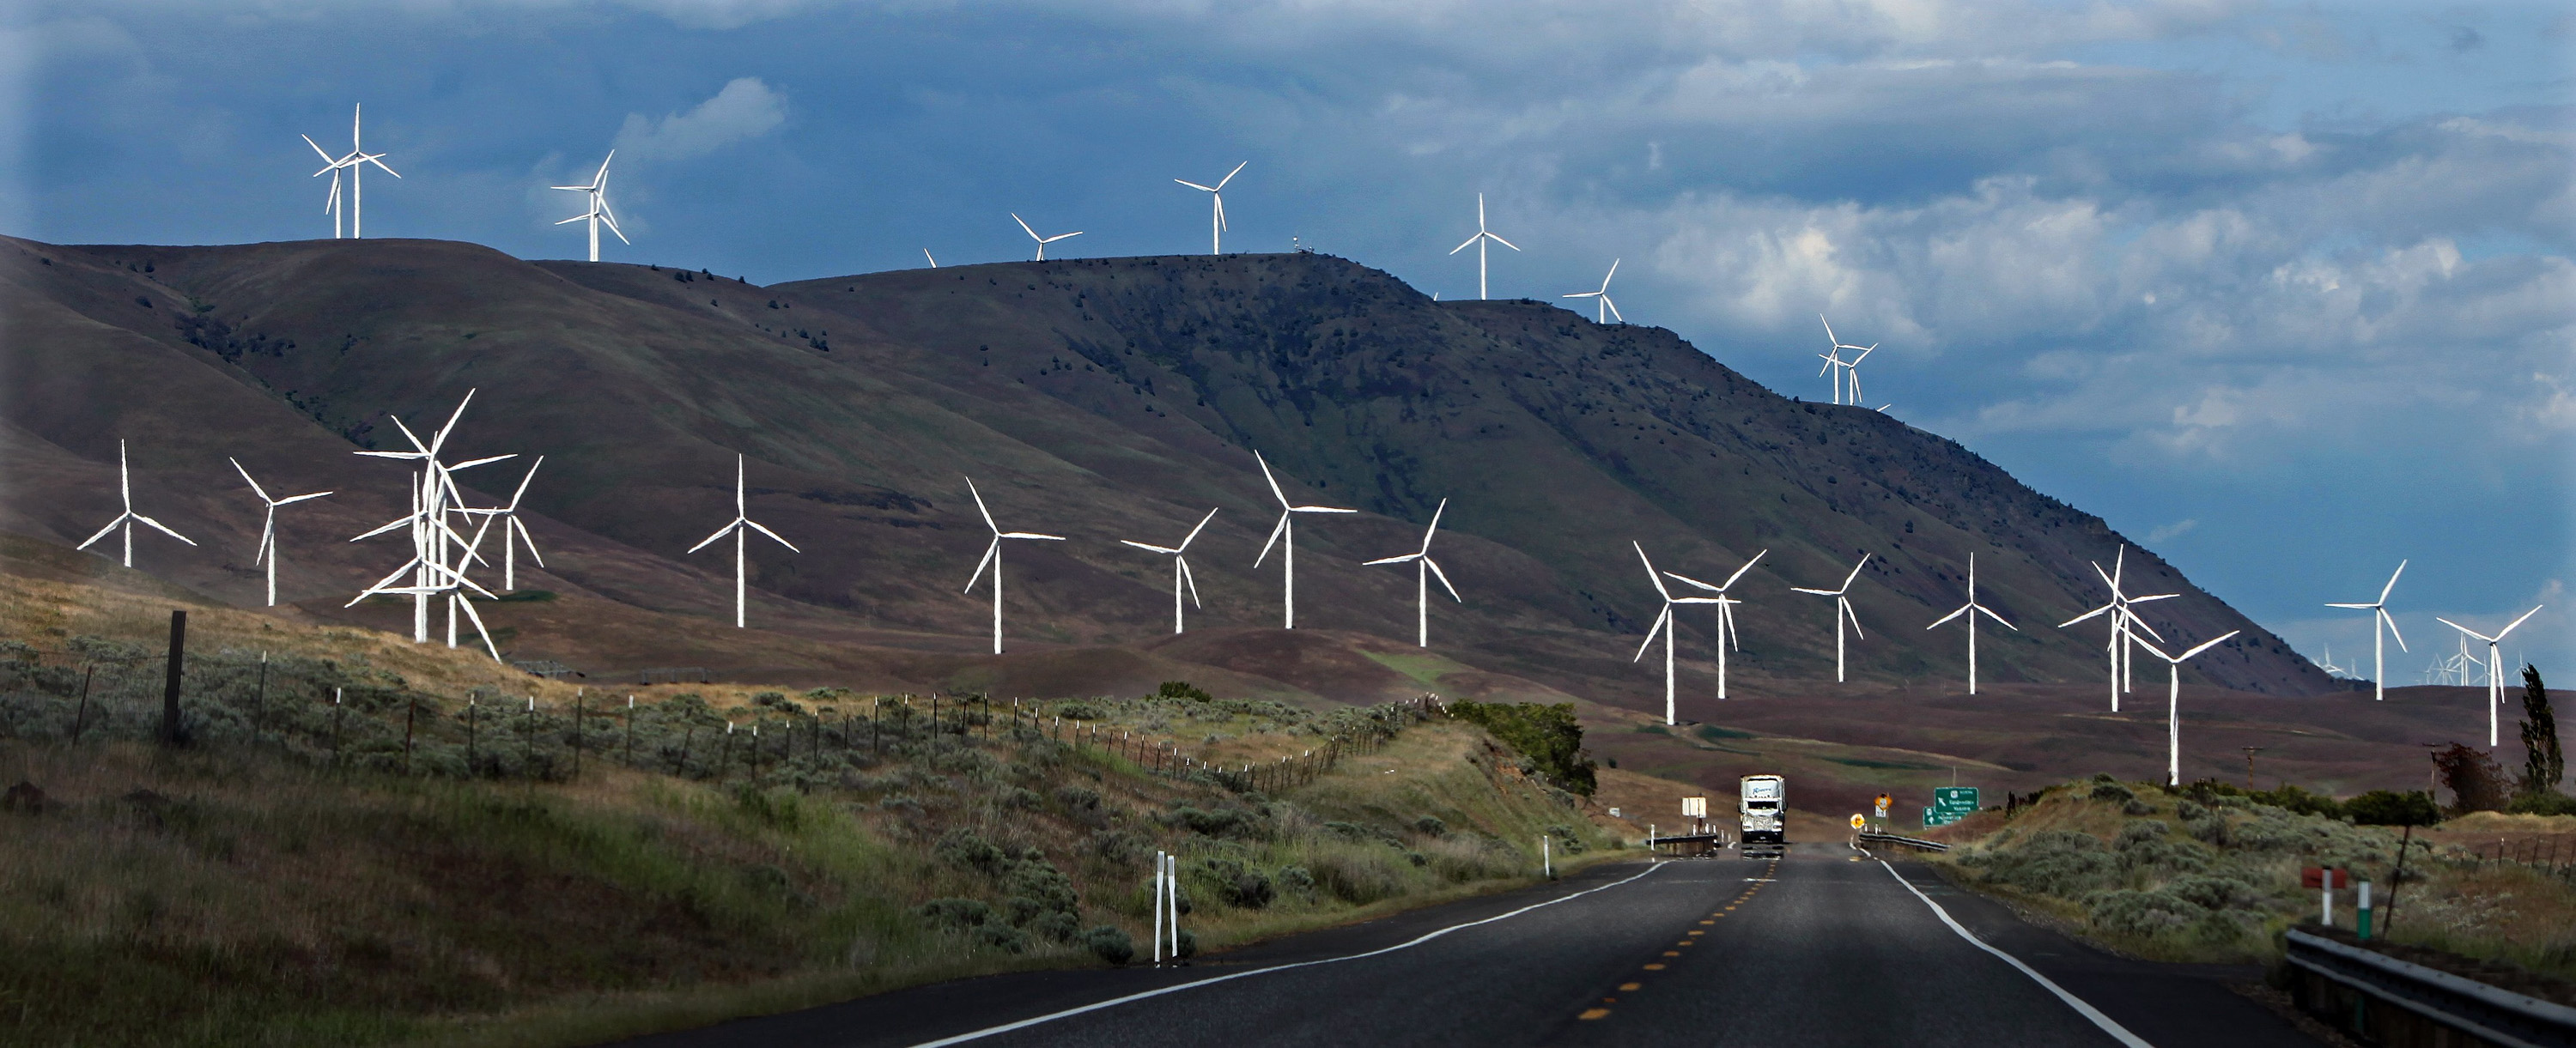 One of the largest wind power projects in Washington State stands at Windy Point ?the bluffs overlooking the Columbia Gorge near the town of Goldendal...